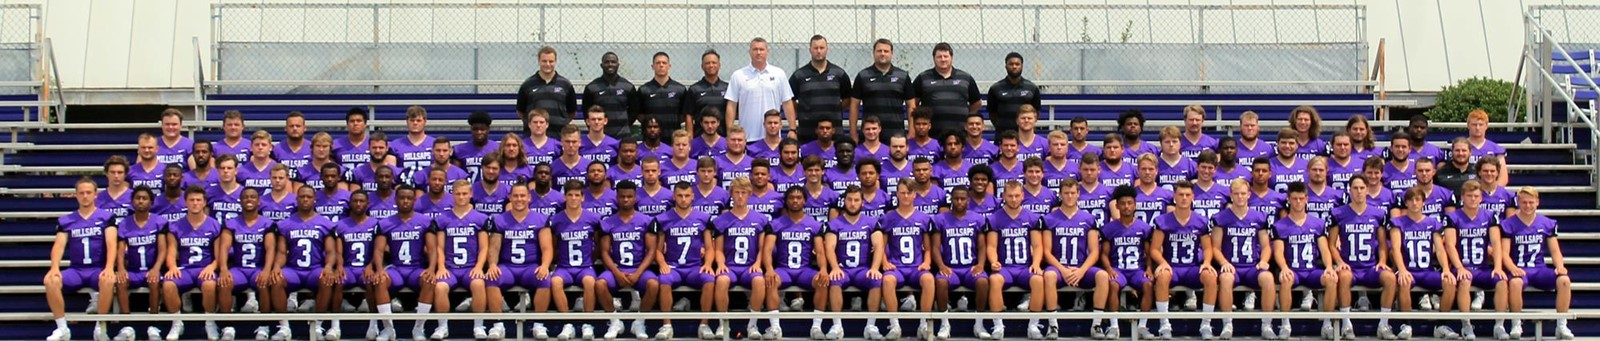 2018 Football Roster Millsaps College Athletics